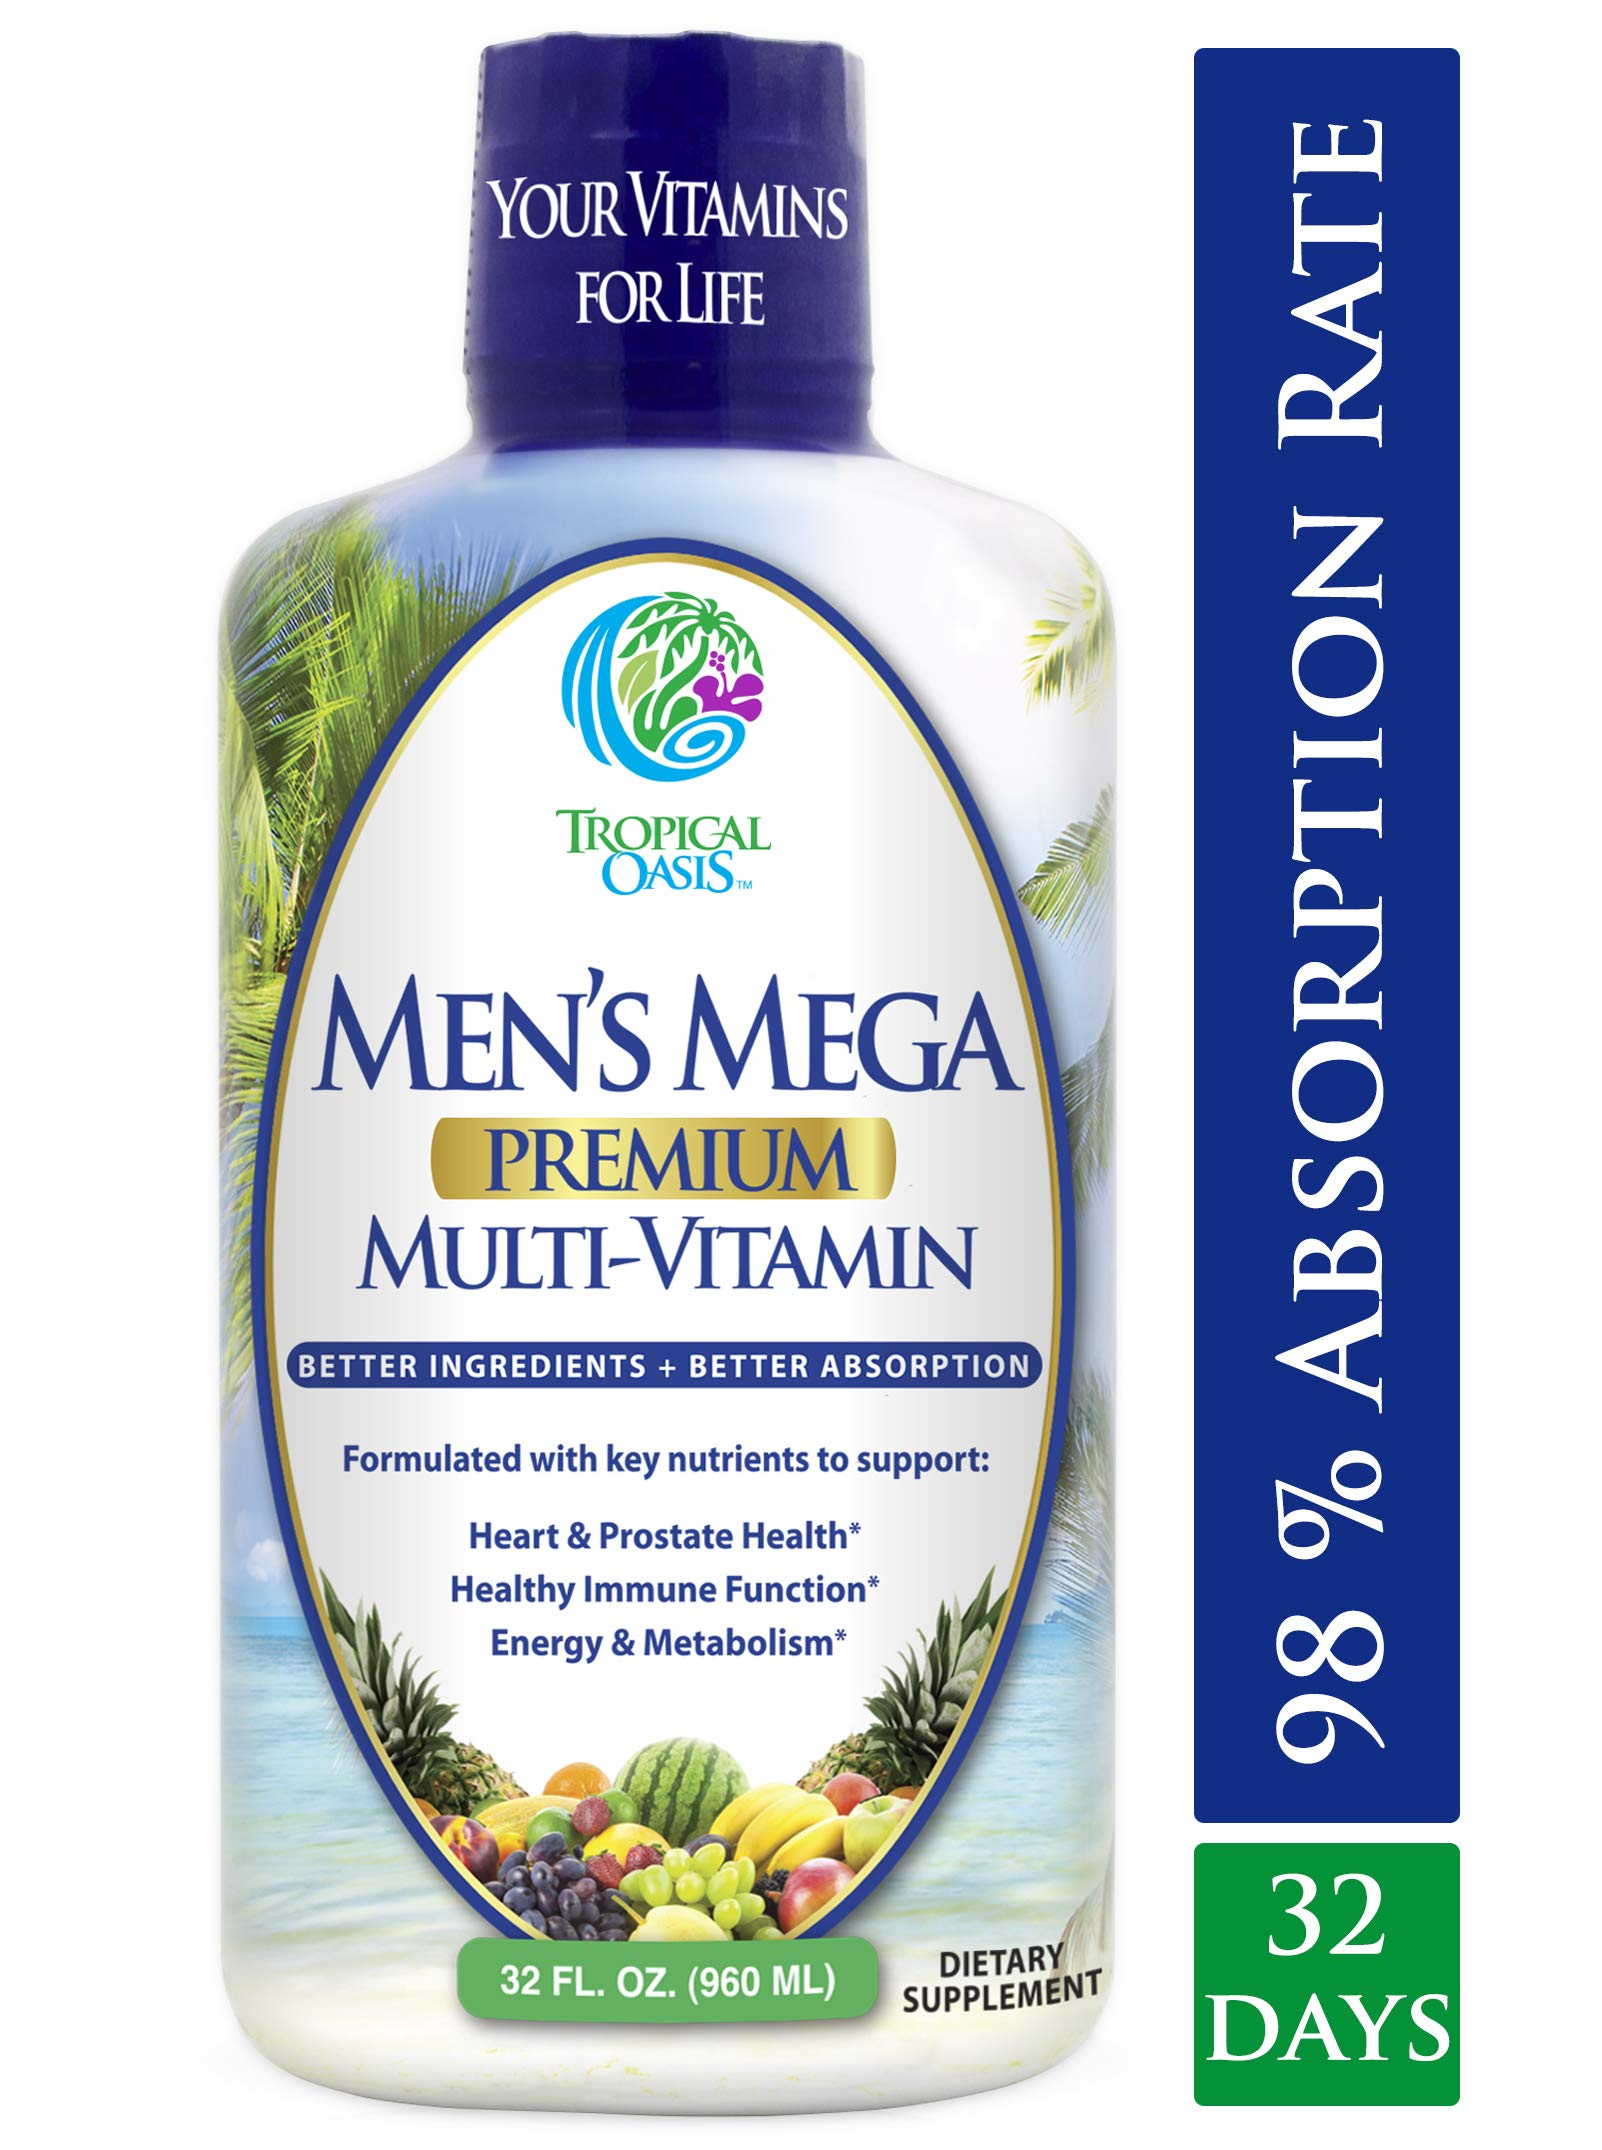 Multivitamin Additional Vitamins Functions Absorption